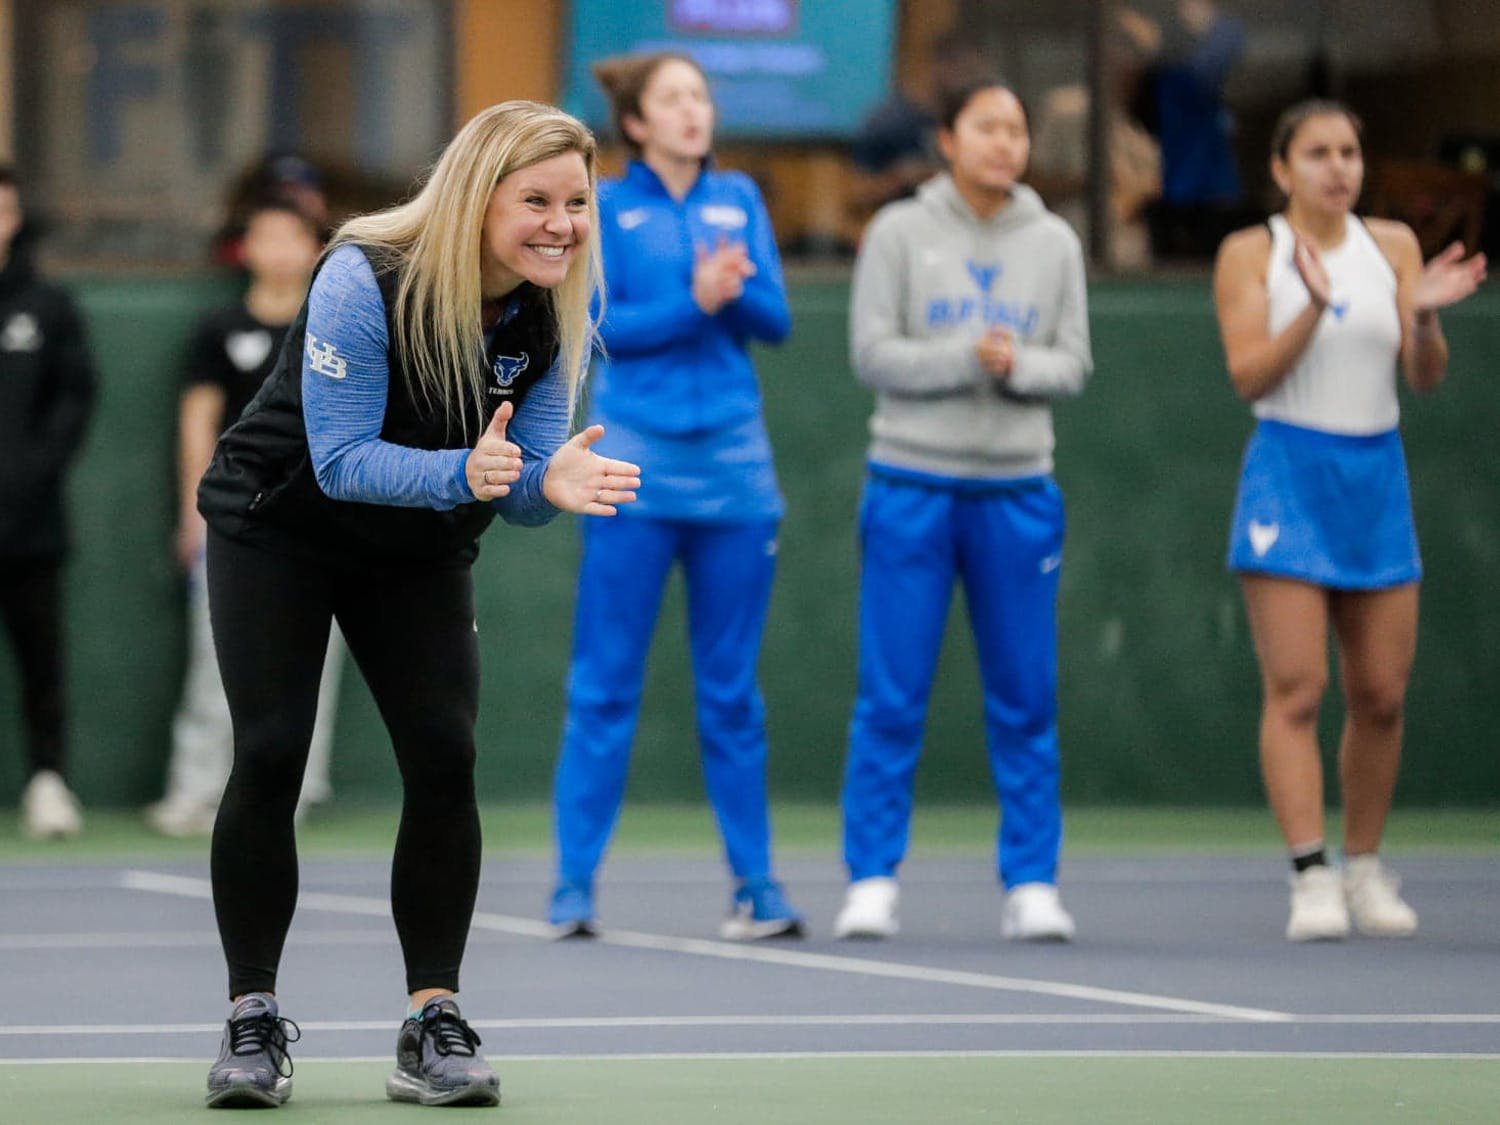 Women's tennis coach Kristen Maines coaching her team.